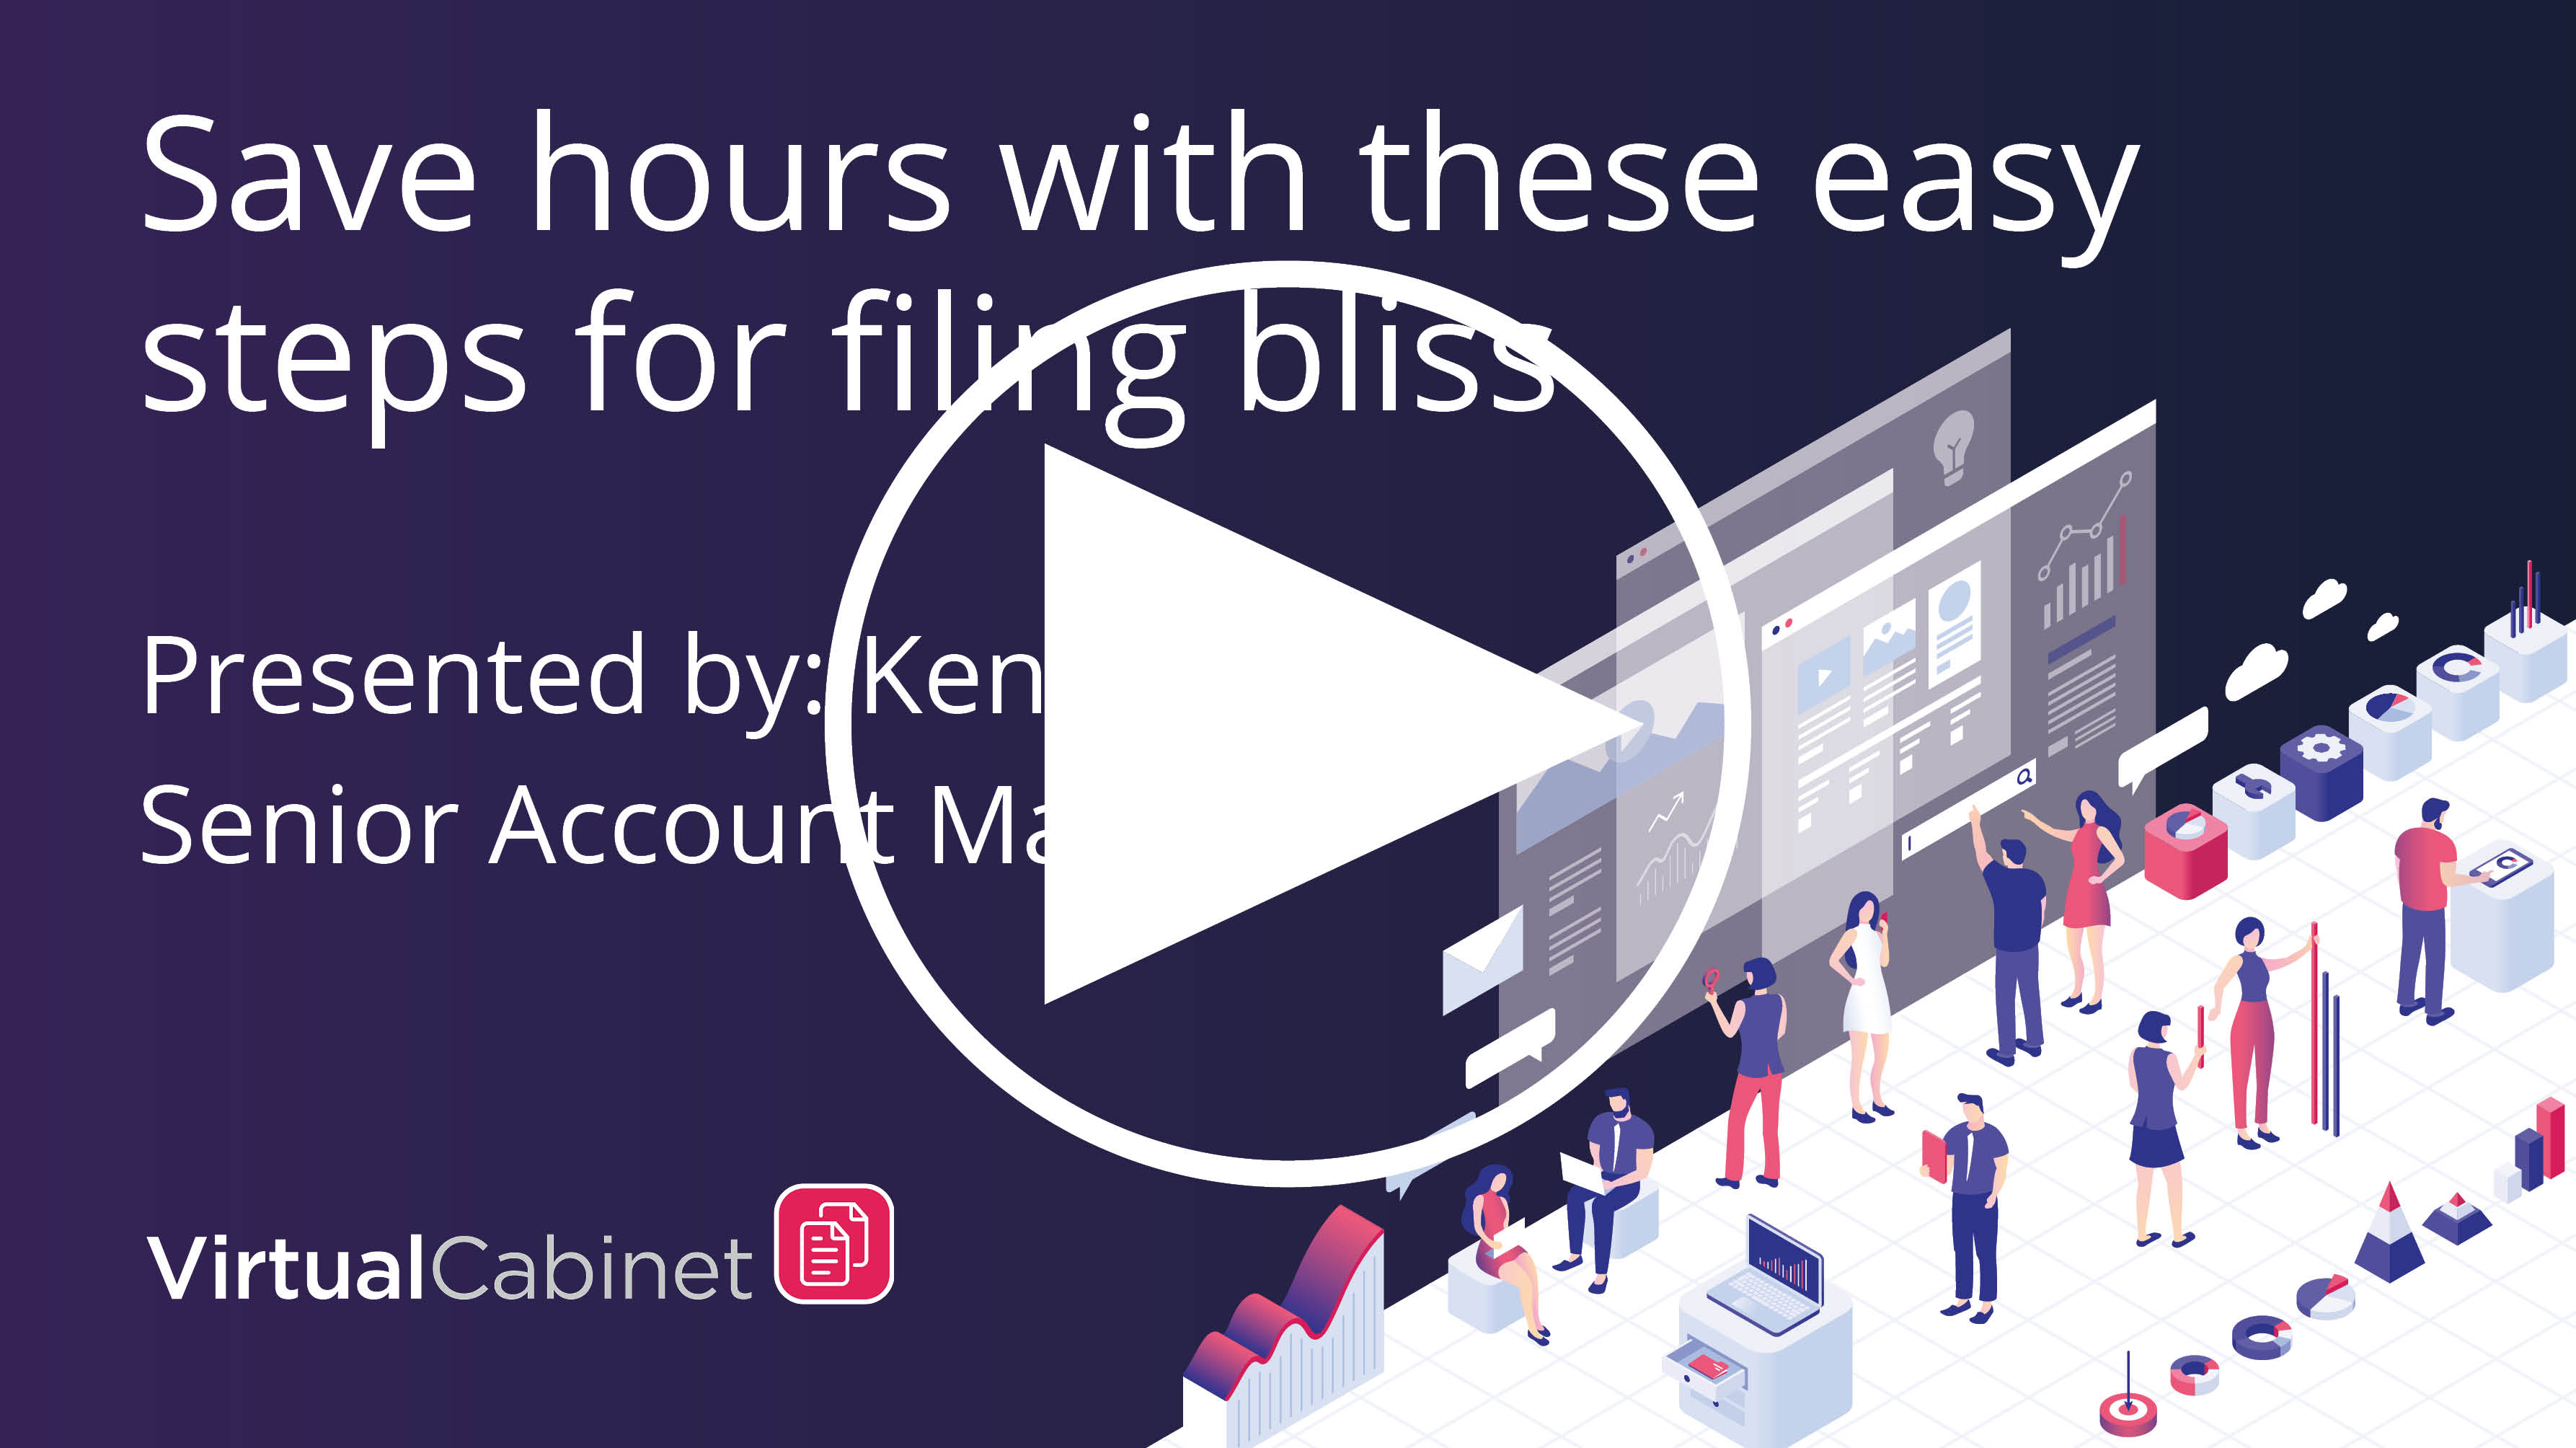 Save hours with these easy steps for filing bliss webinar